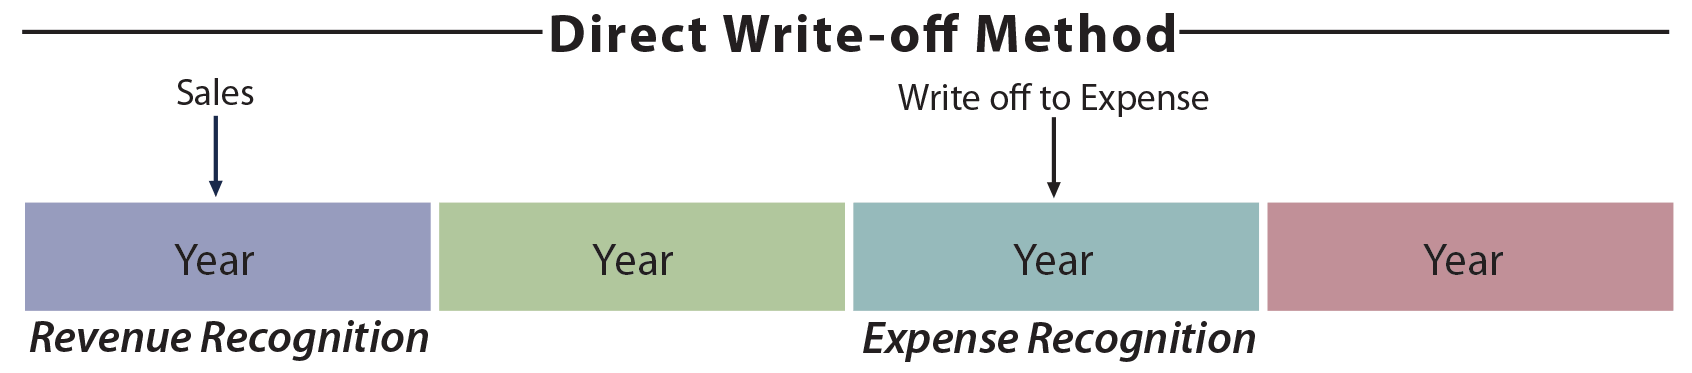 Direct Write-Off Method illustration